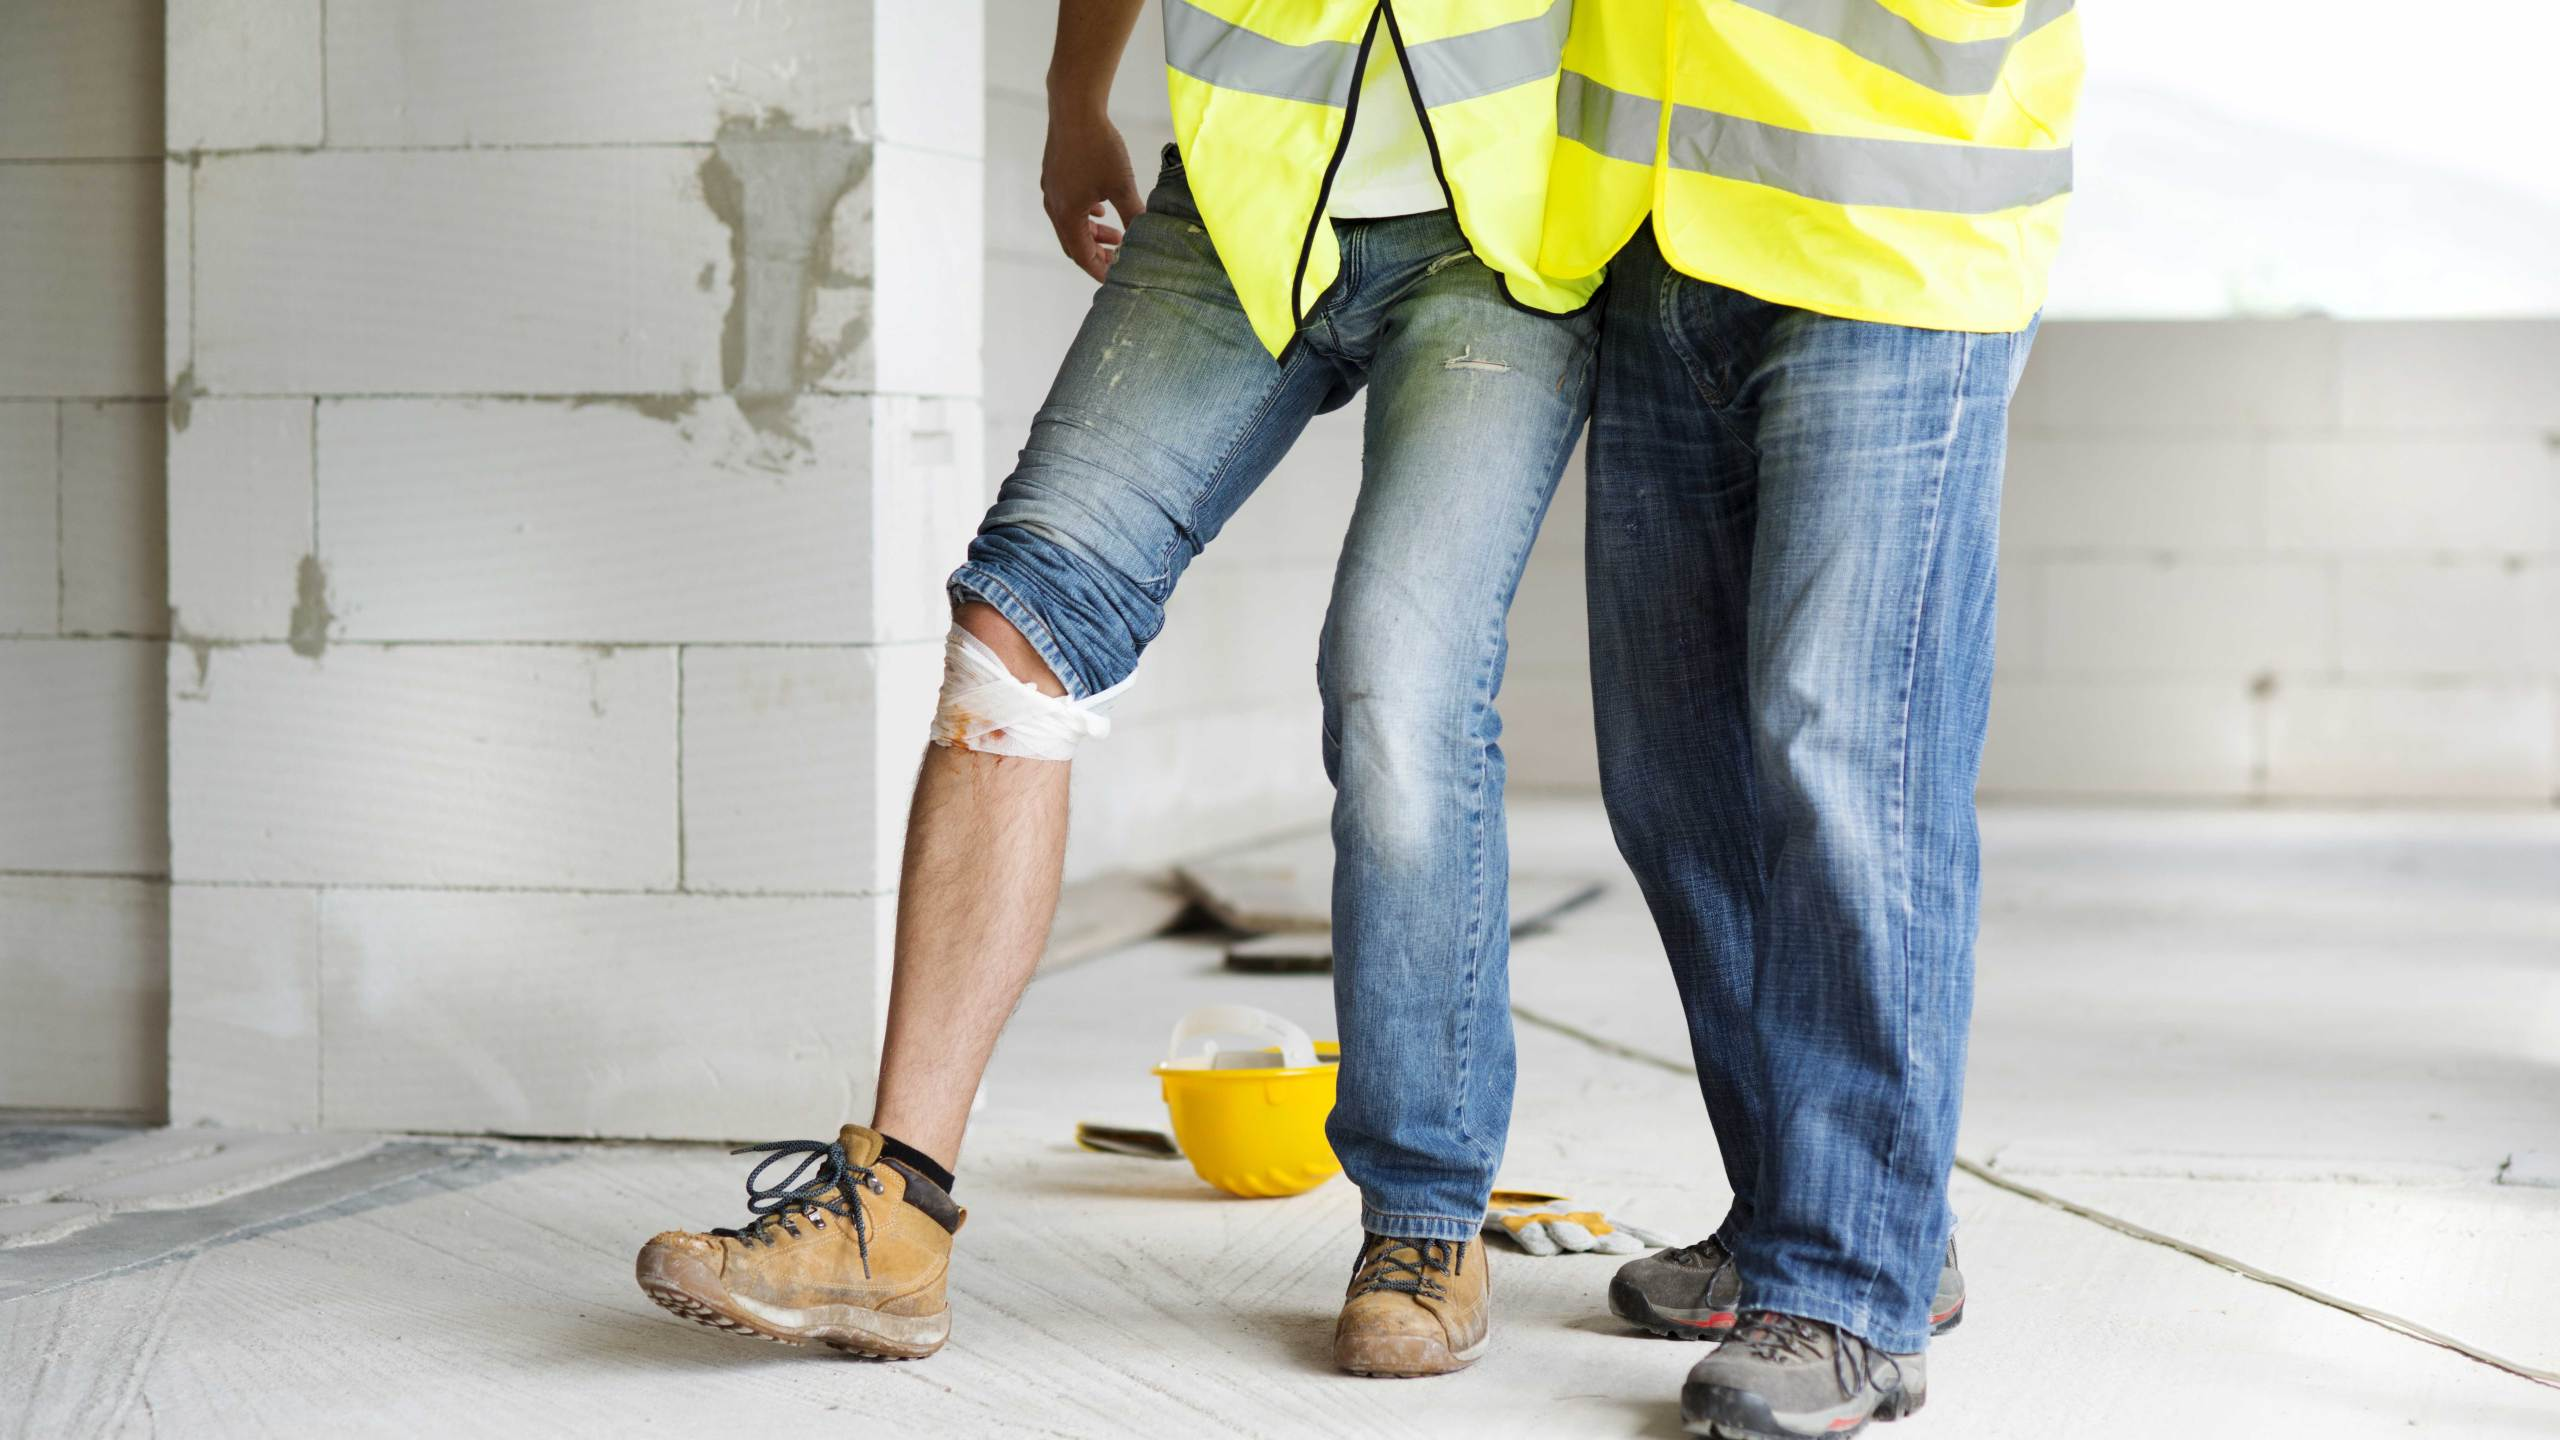 graphicstock-construction-worker-has-an-accident-while-working-on-new-house_BC-PGwCcZ-_1534538945734.jpg